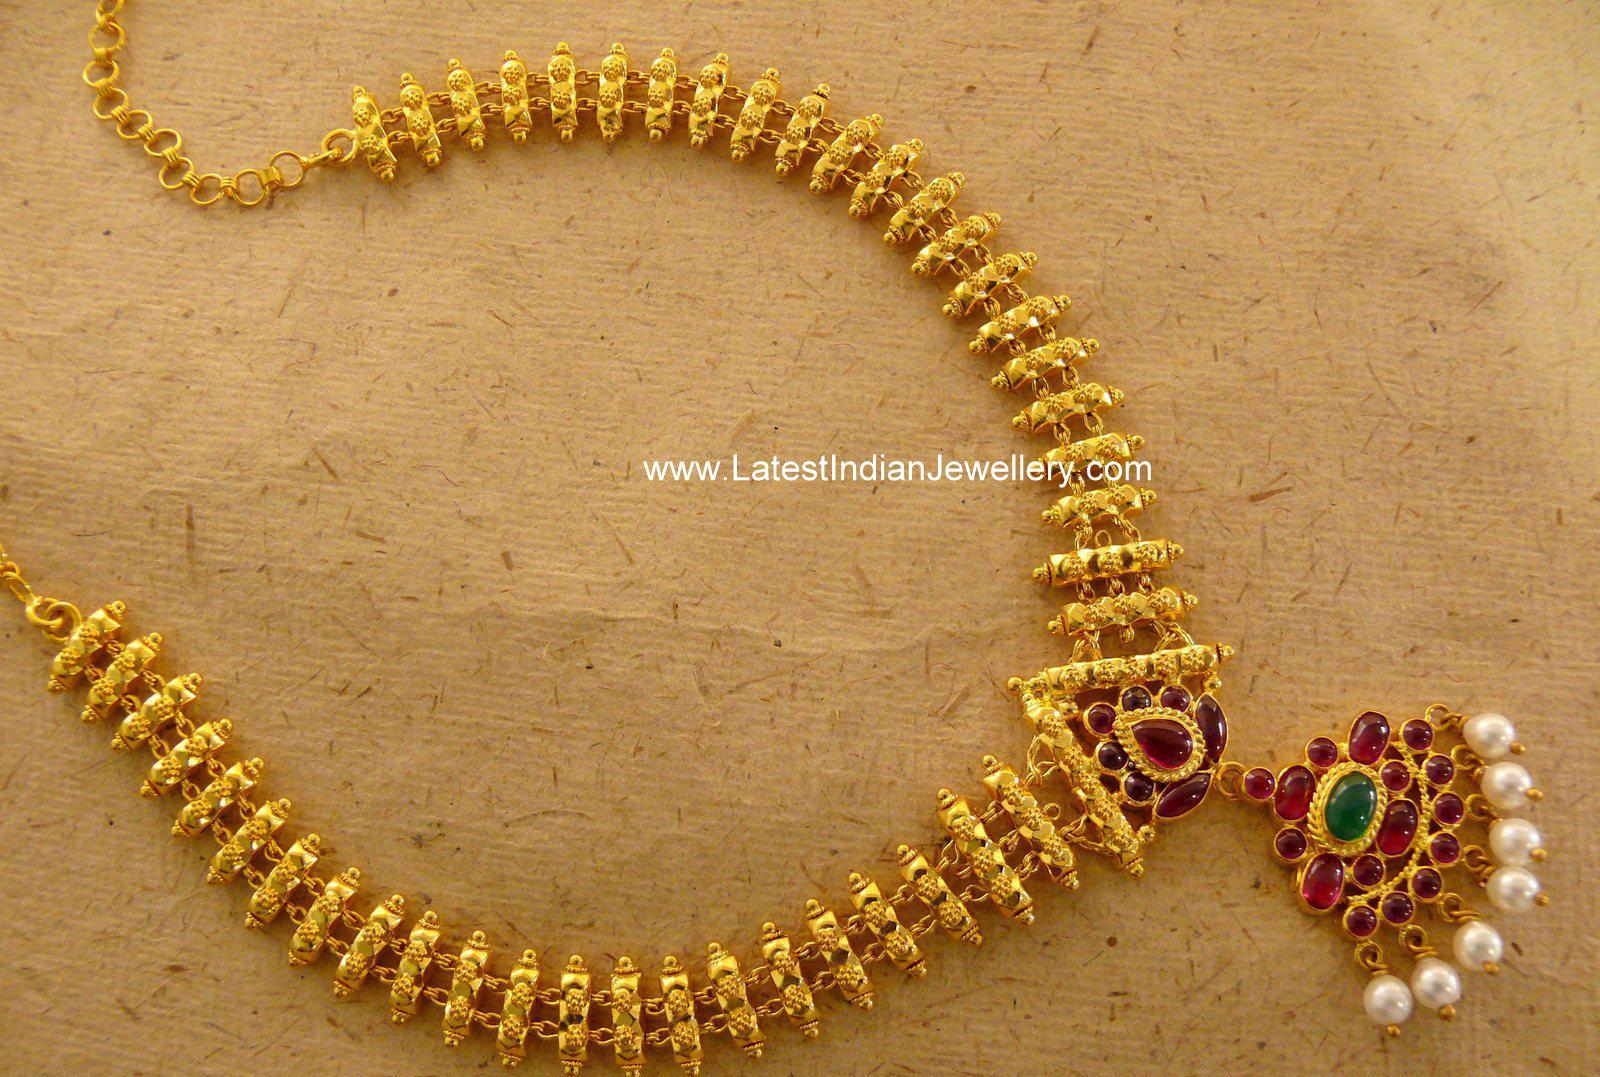 Lovely Hand Crafted Gold Necklace With Burma Rubies